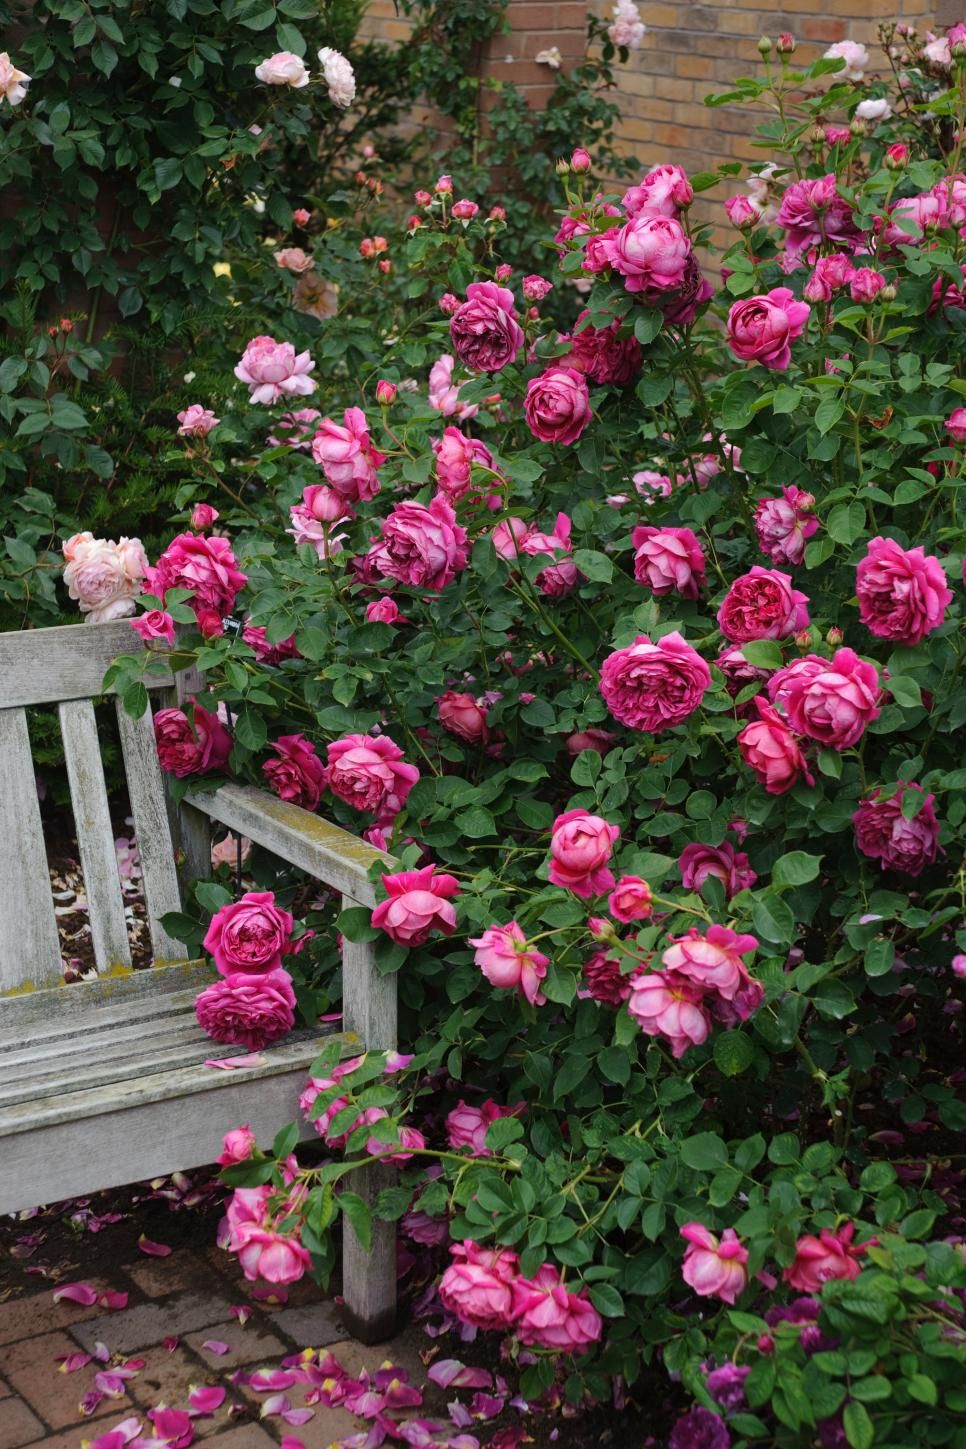 The most popular english roses in america david austin british rose breeder david austin creates some of the most beautiful flowers in the world dhlflorist Choice Image